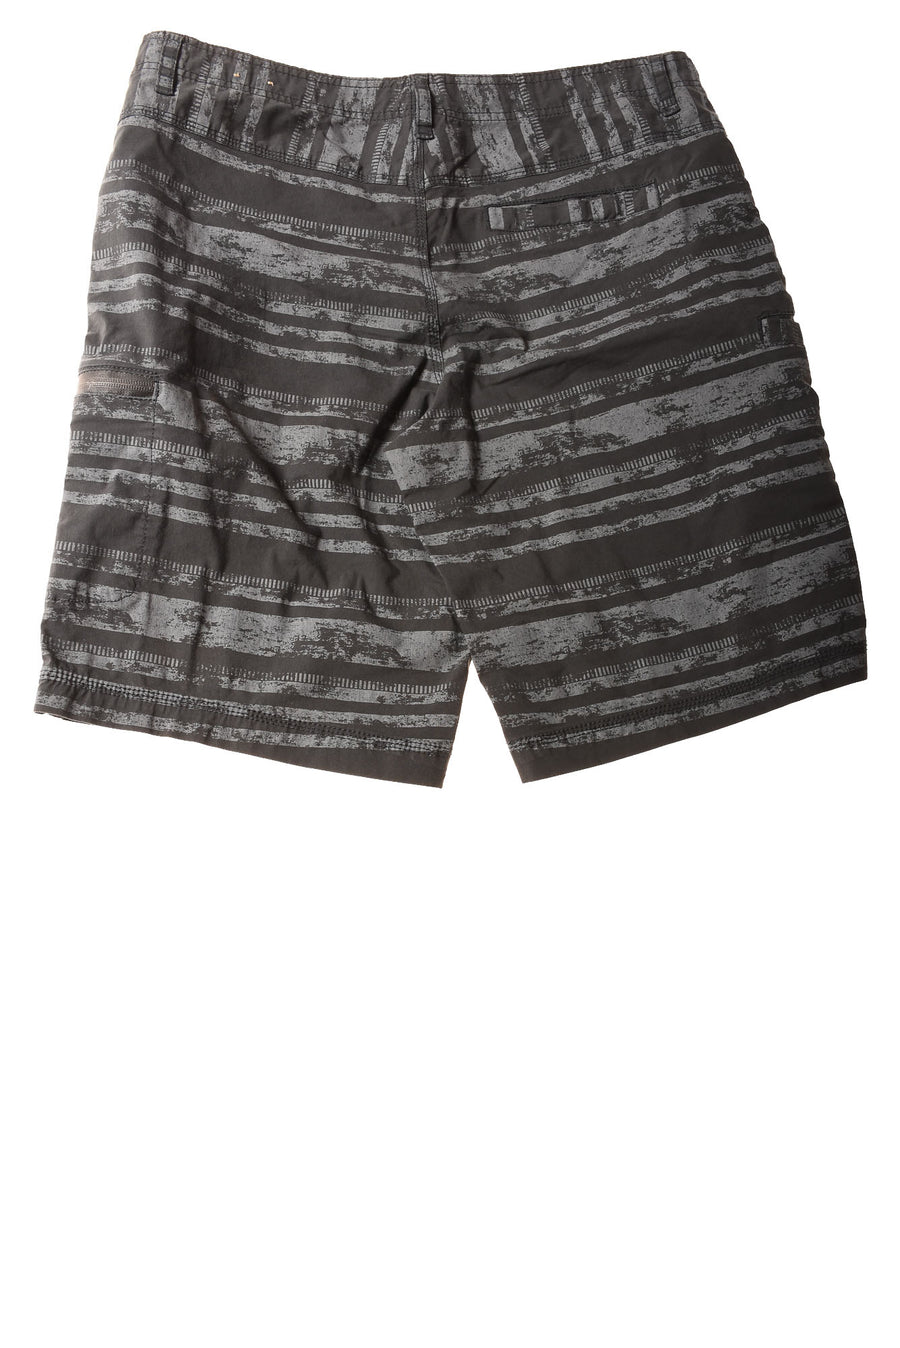 USED Urban Pipeline Men's Shorts 34 Gray / Print